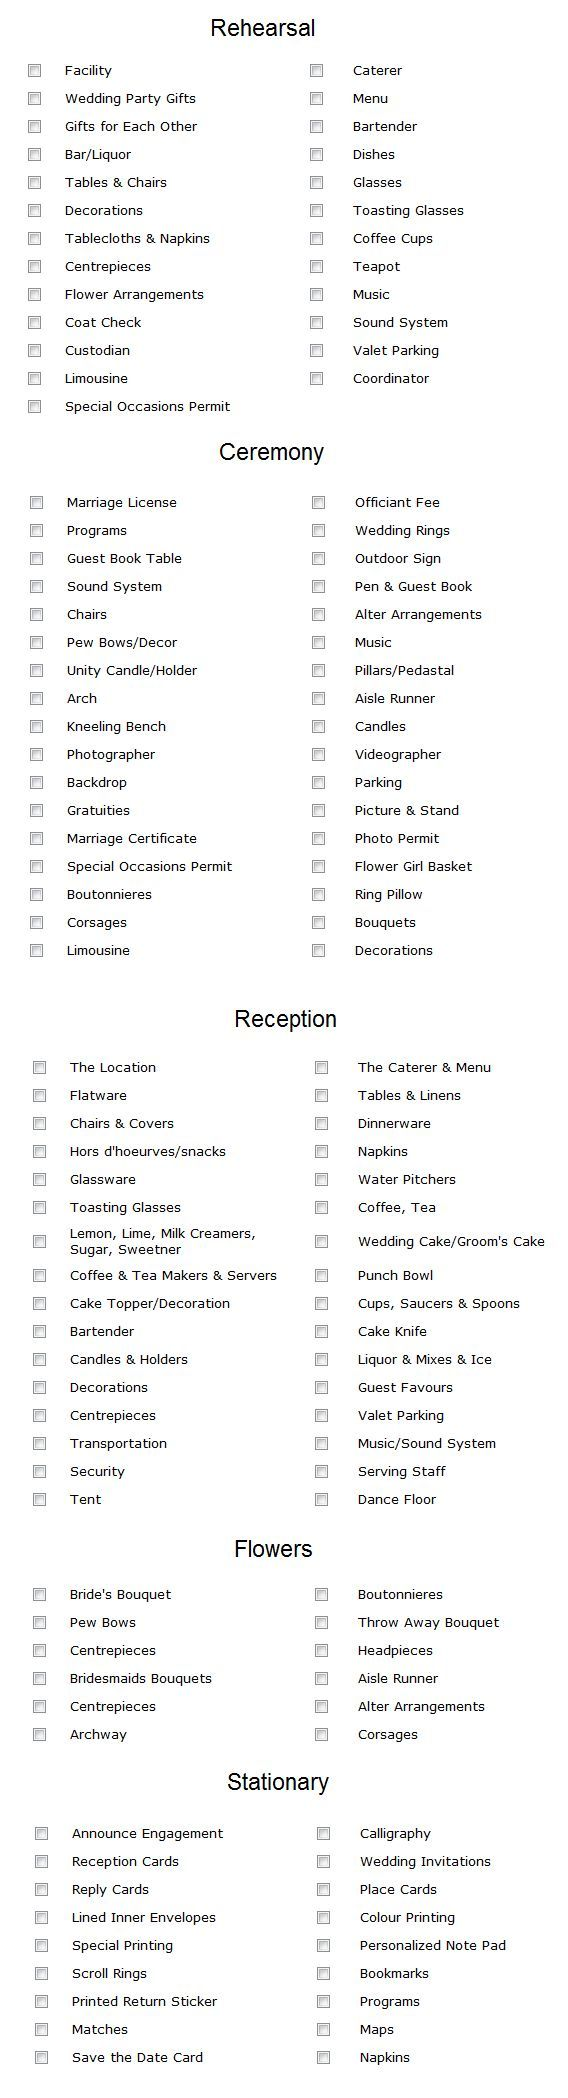 Though most of these are not must-haves in my opinion, this is still a helpful checklist.